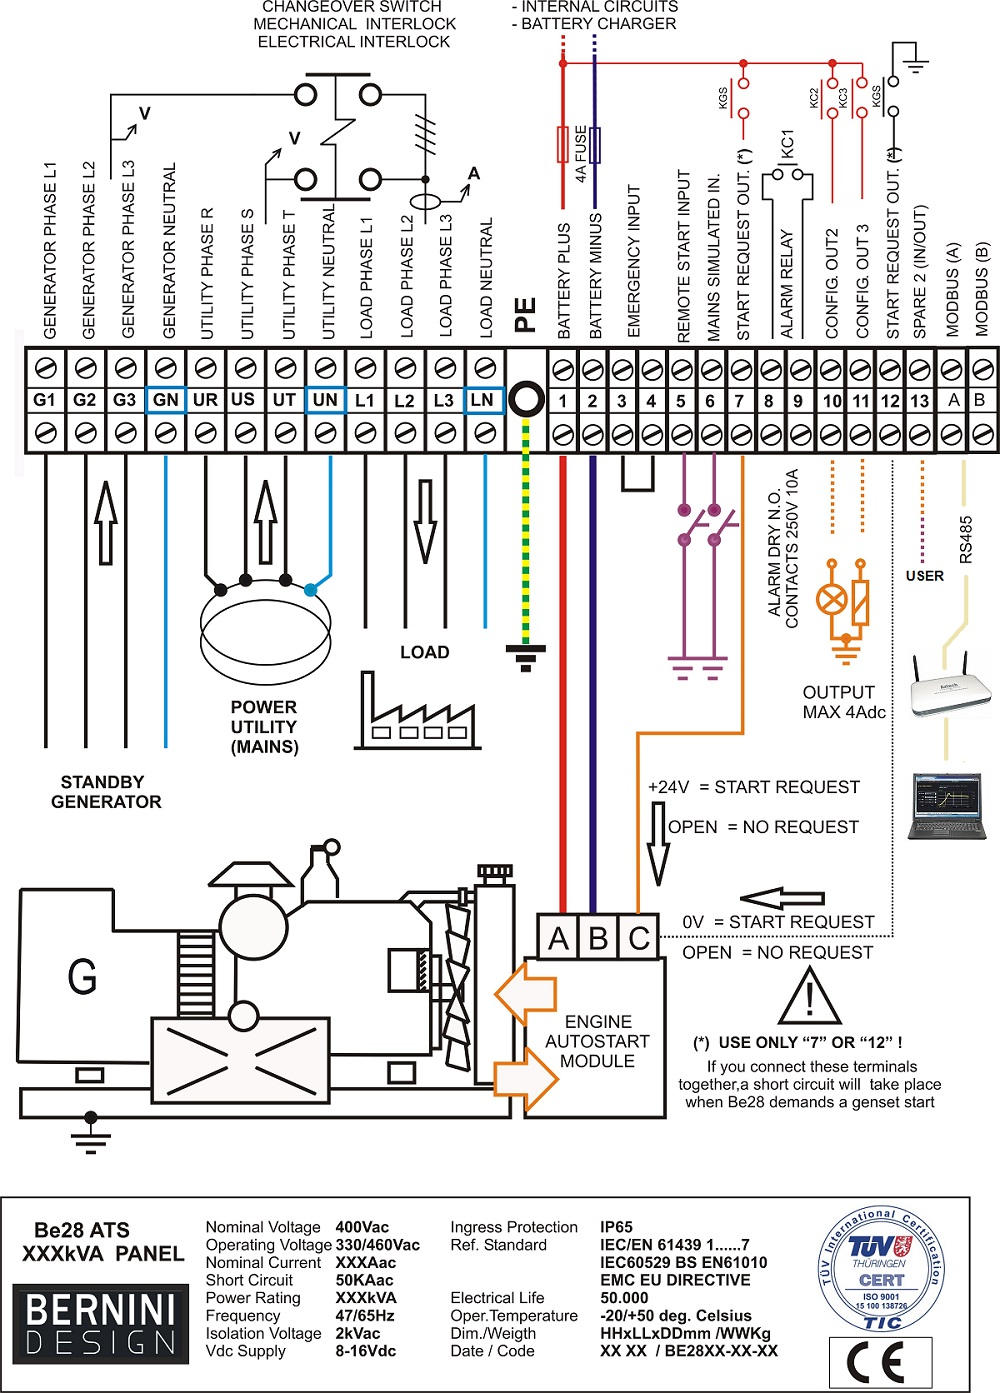 Amusing M221 Salzer Rotary Switch Wiring Diagram Images - Best Image ...